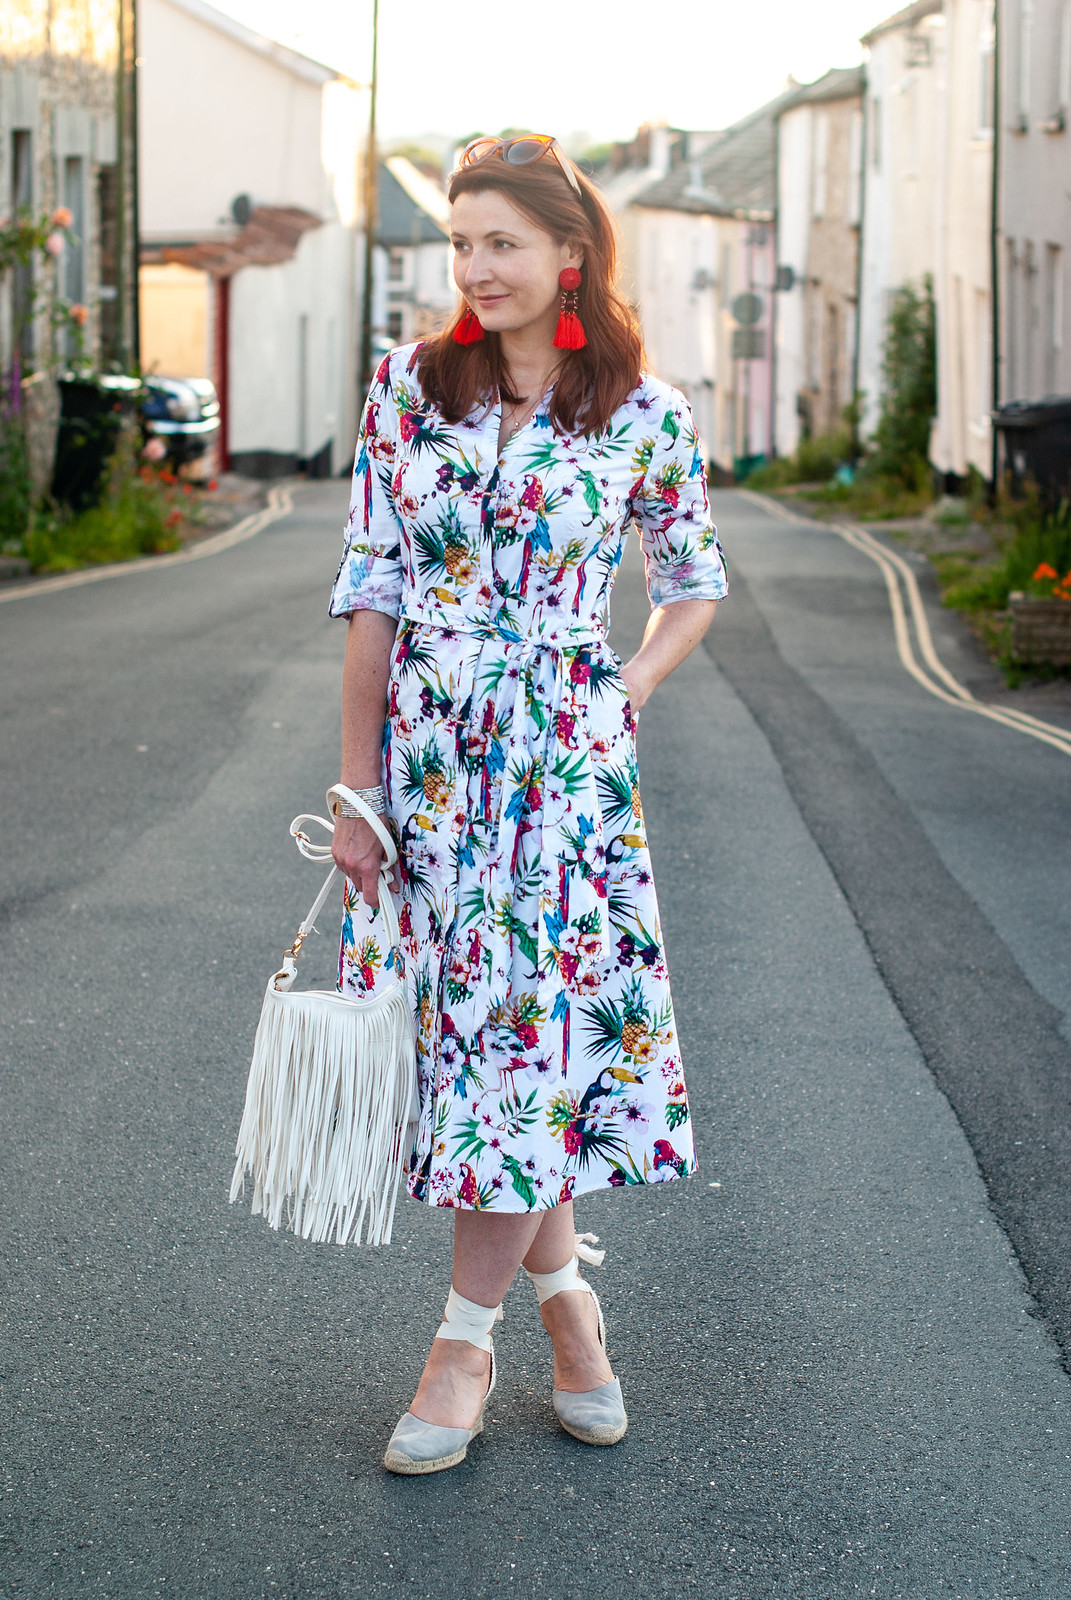 Florals With a Twist | A Loud Birds & Botanical Print \ botanical print midi shirt dress \ grey lace-up espadrilles \ red tassel earrings \ white fringed crossbody bag | Not Dressed As Lamb, over 40 style